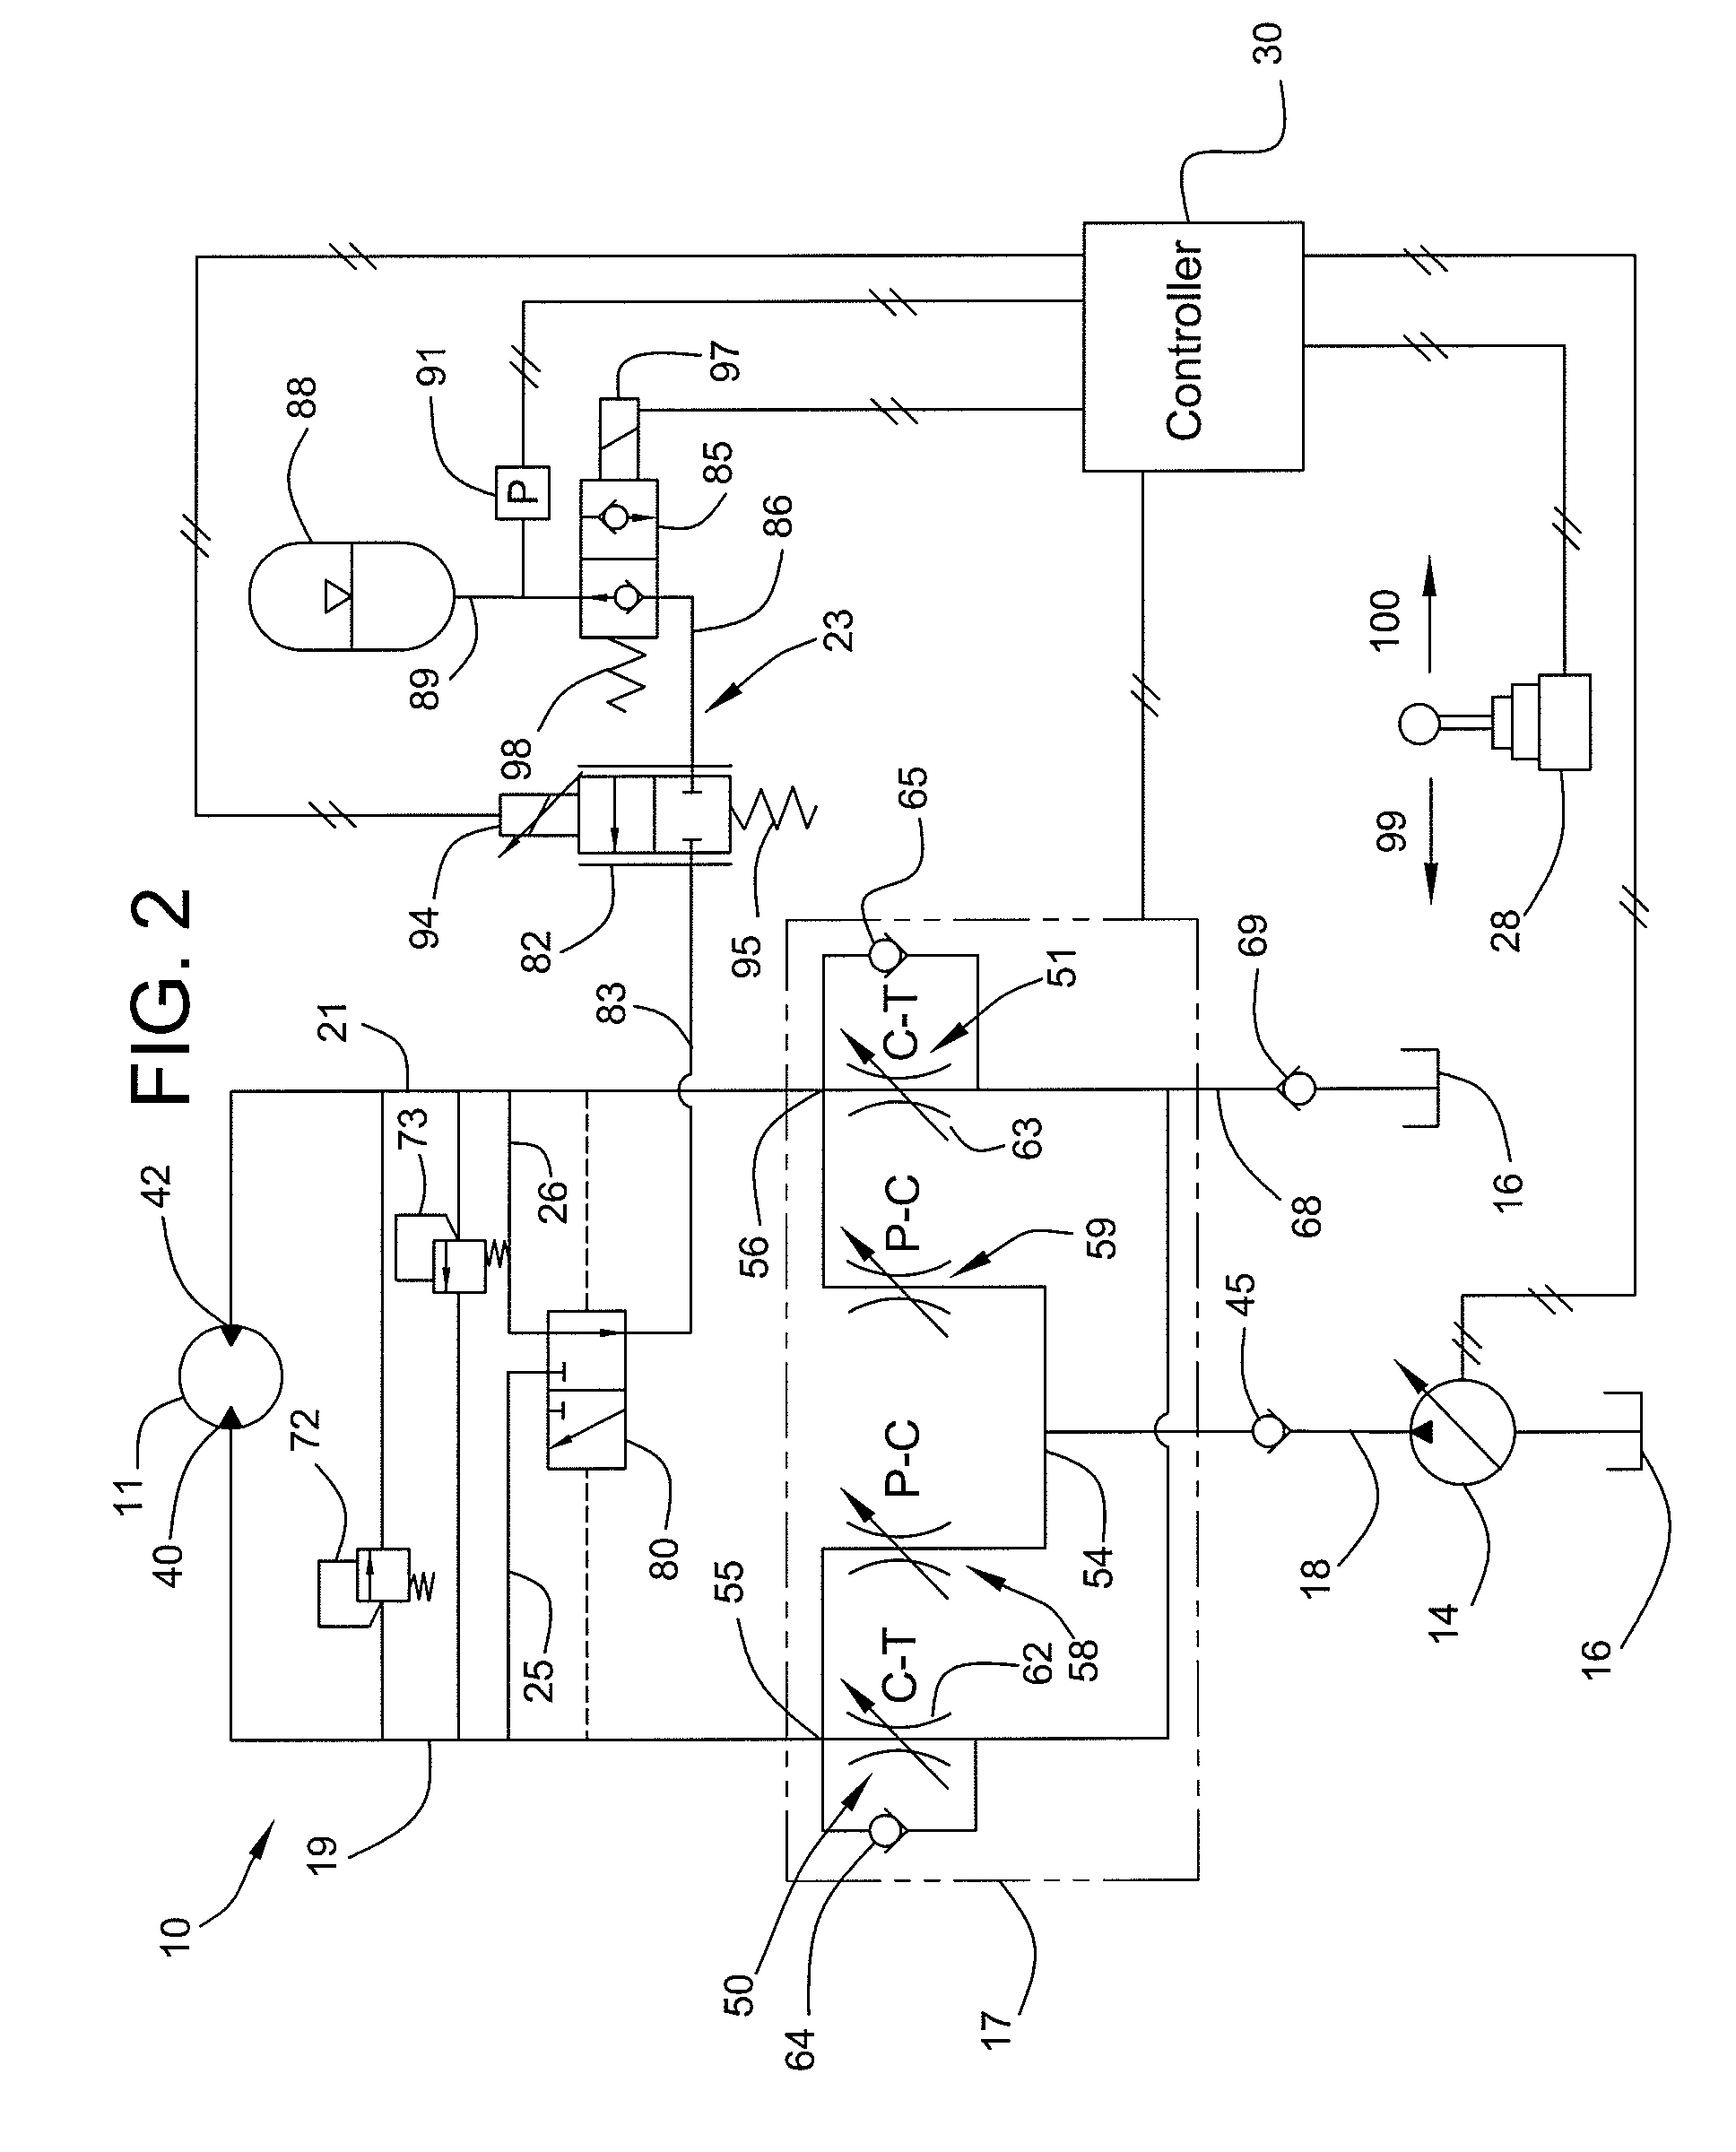 patent us7908852 control system for recovering swing motor kinetic Op Amp Circuit patent drawing